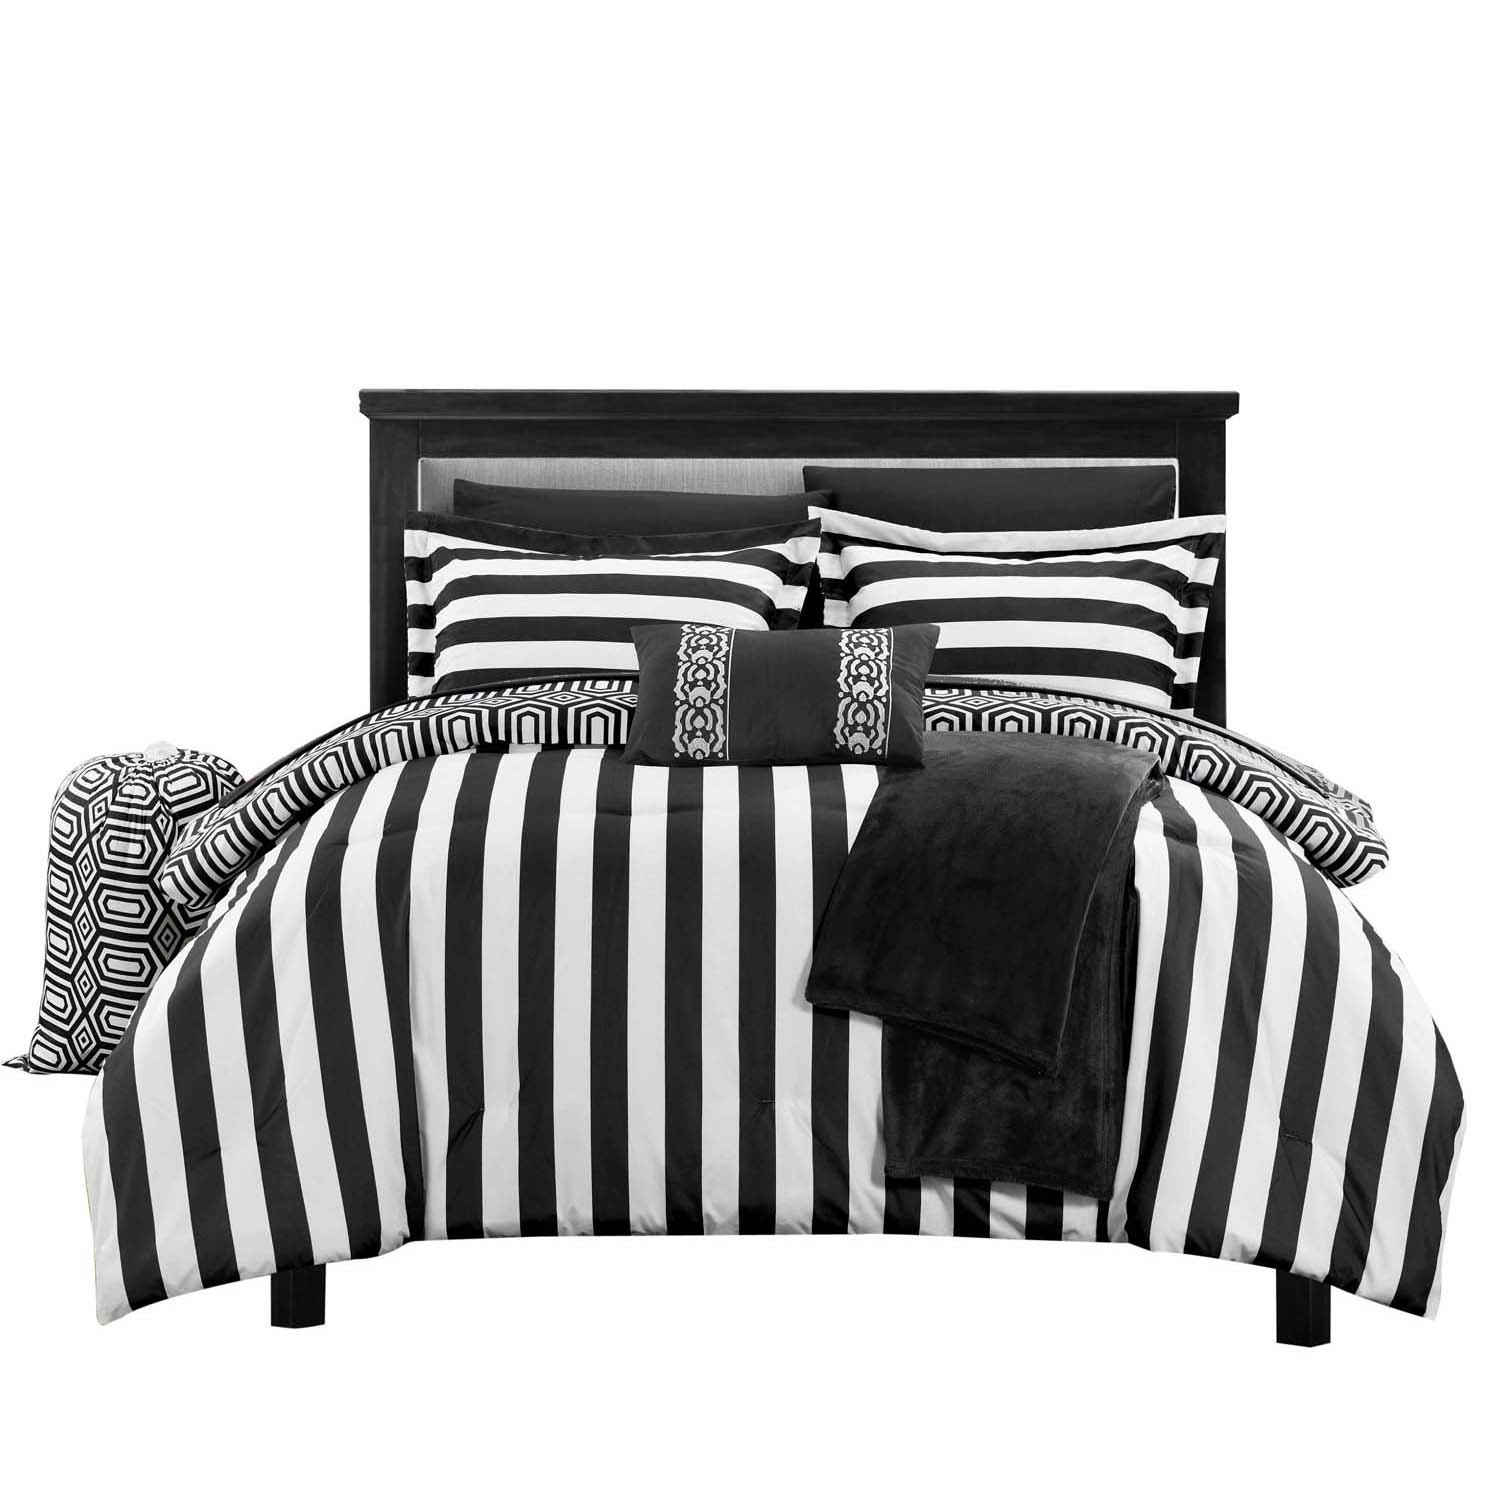 Lyon Paris Striped Comforter Sheet Set Bed In A Bag Full & Twin XL Black